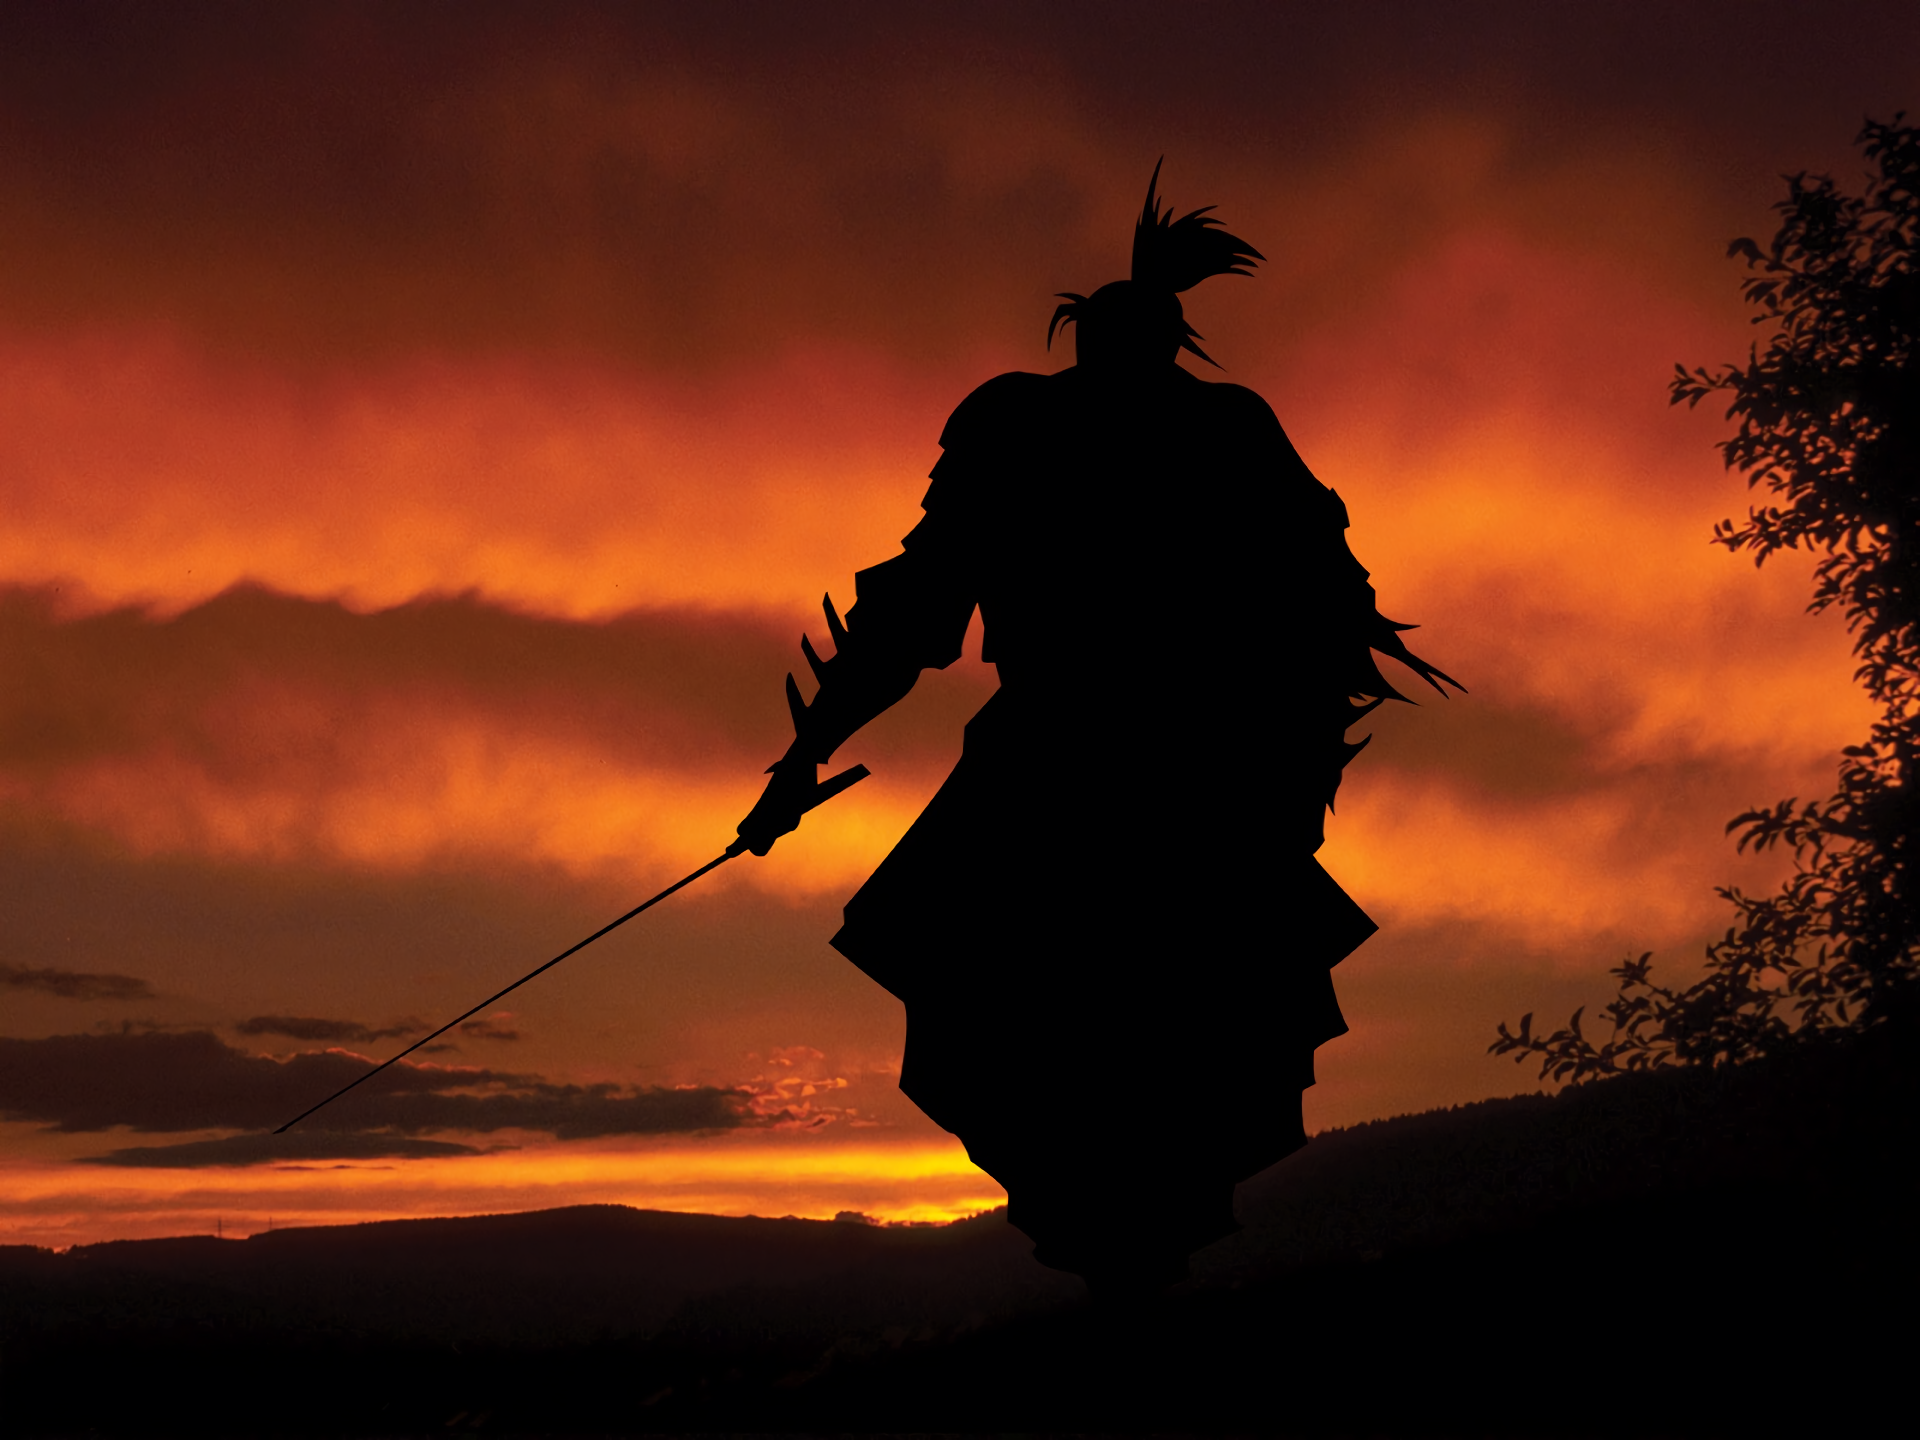 222 Samurai HD Wallpapers